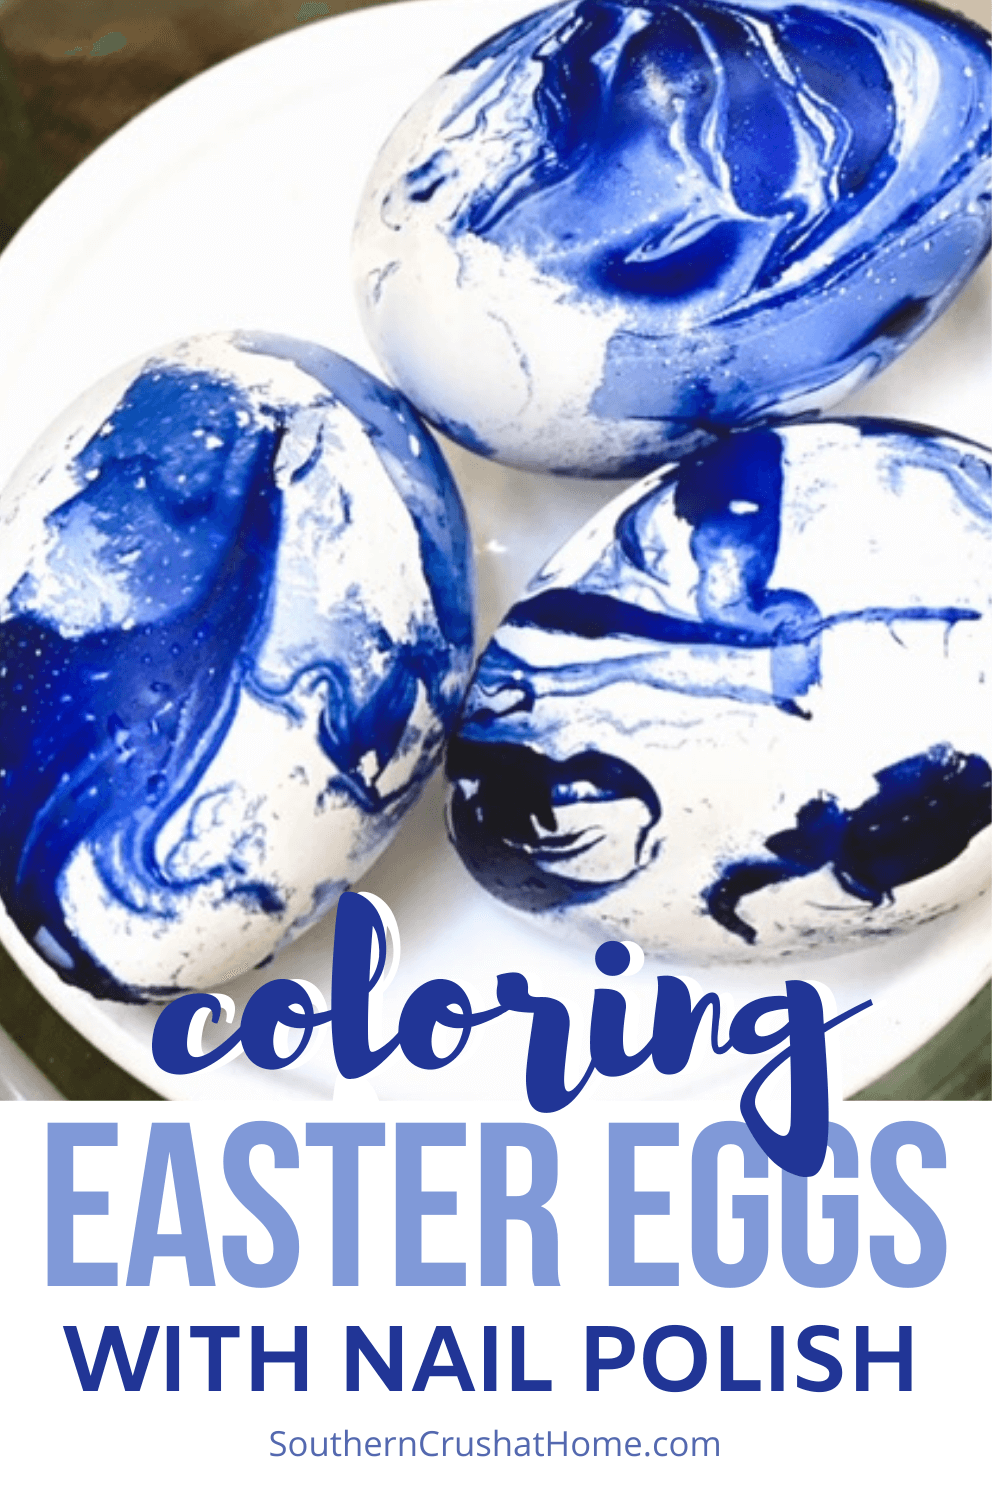 How to Color Easter Eggs with Nail Polish